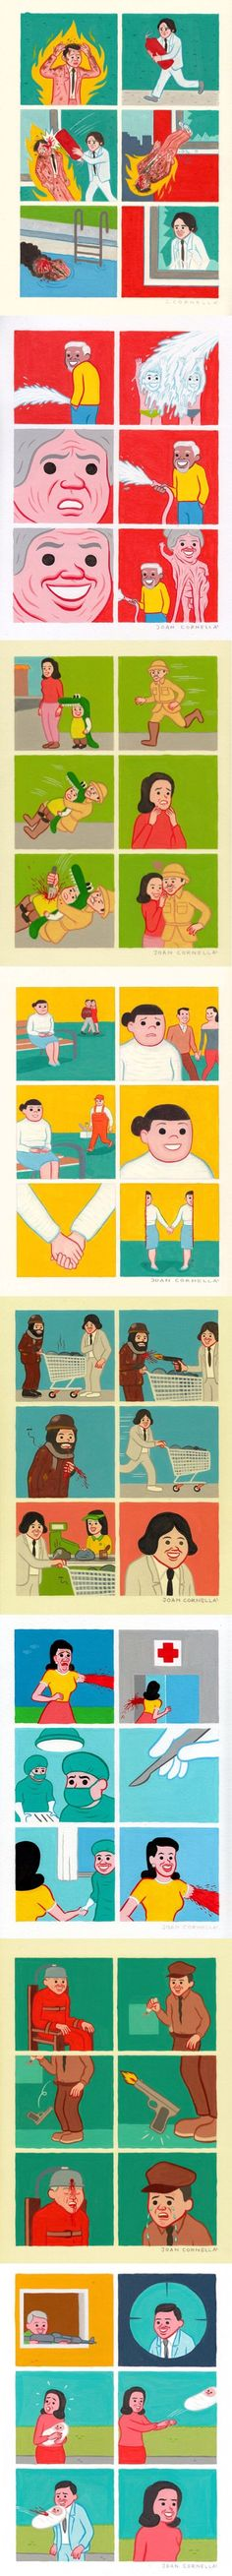 A compilation of Joan Cornella comics: Part 3